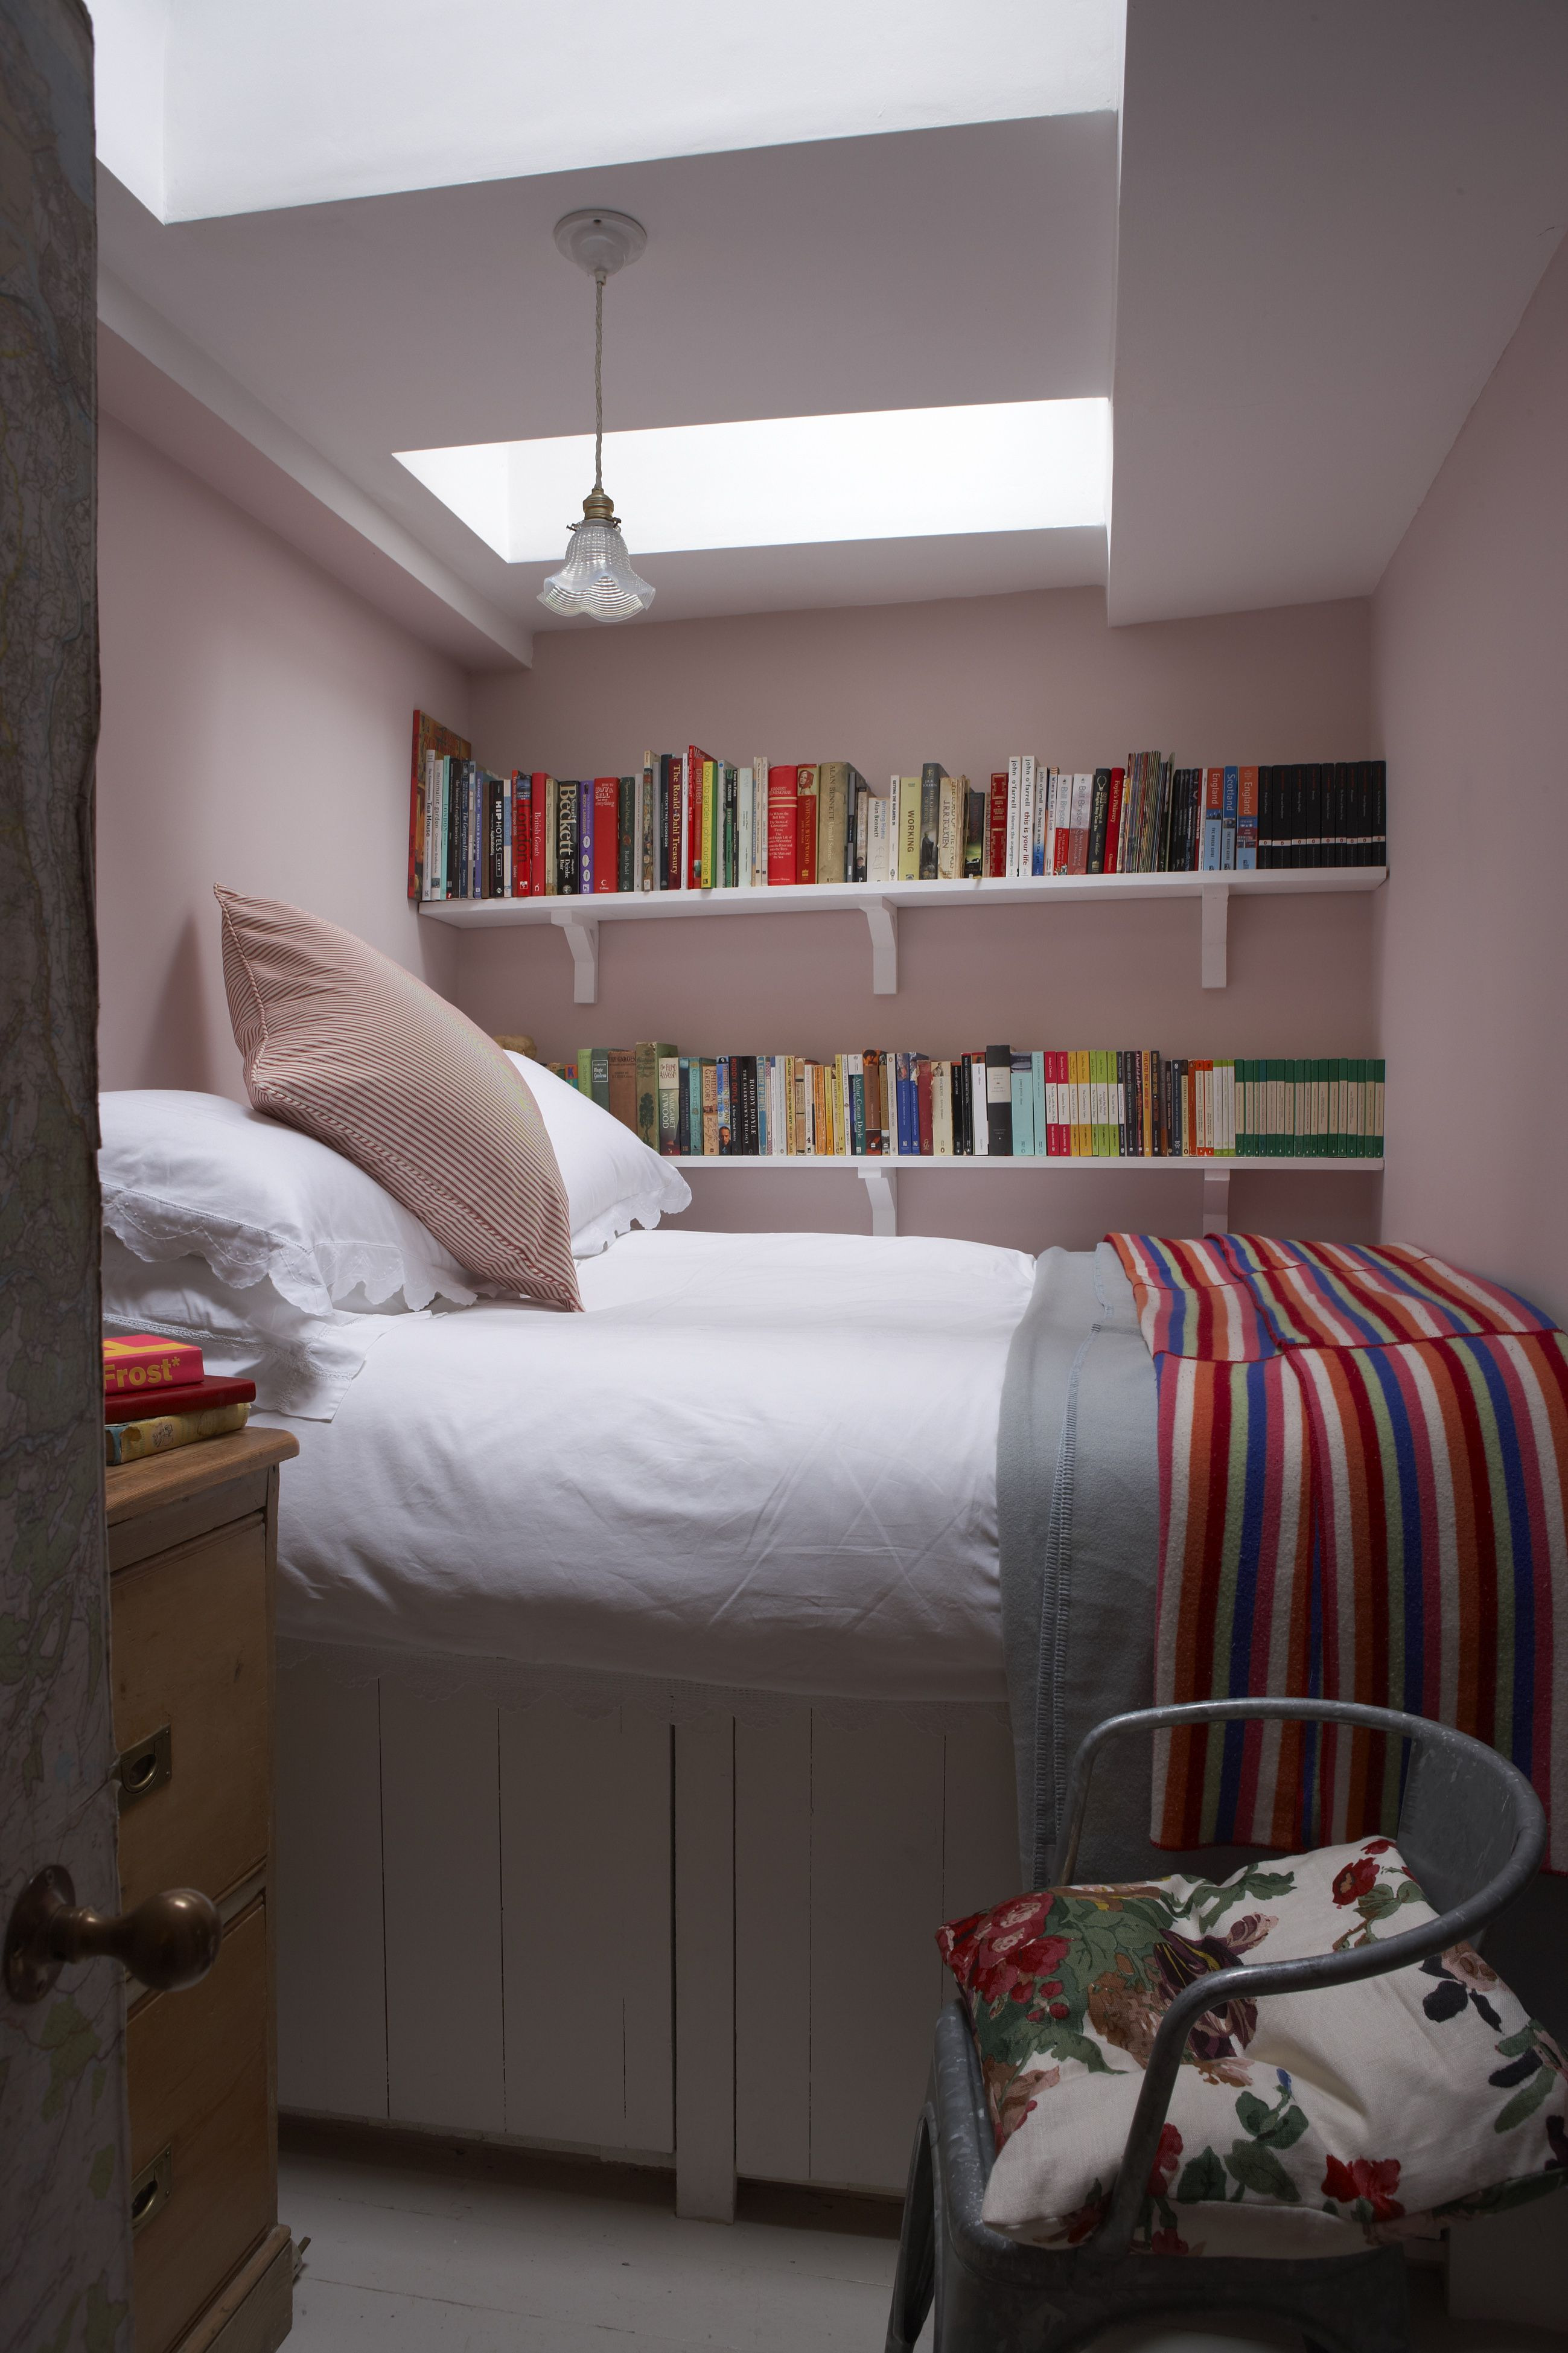 Small Bedroom Style Ideas New 18 Small Bedroom Ideas to Fall In Love with – Small Bedroom